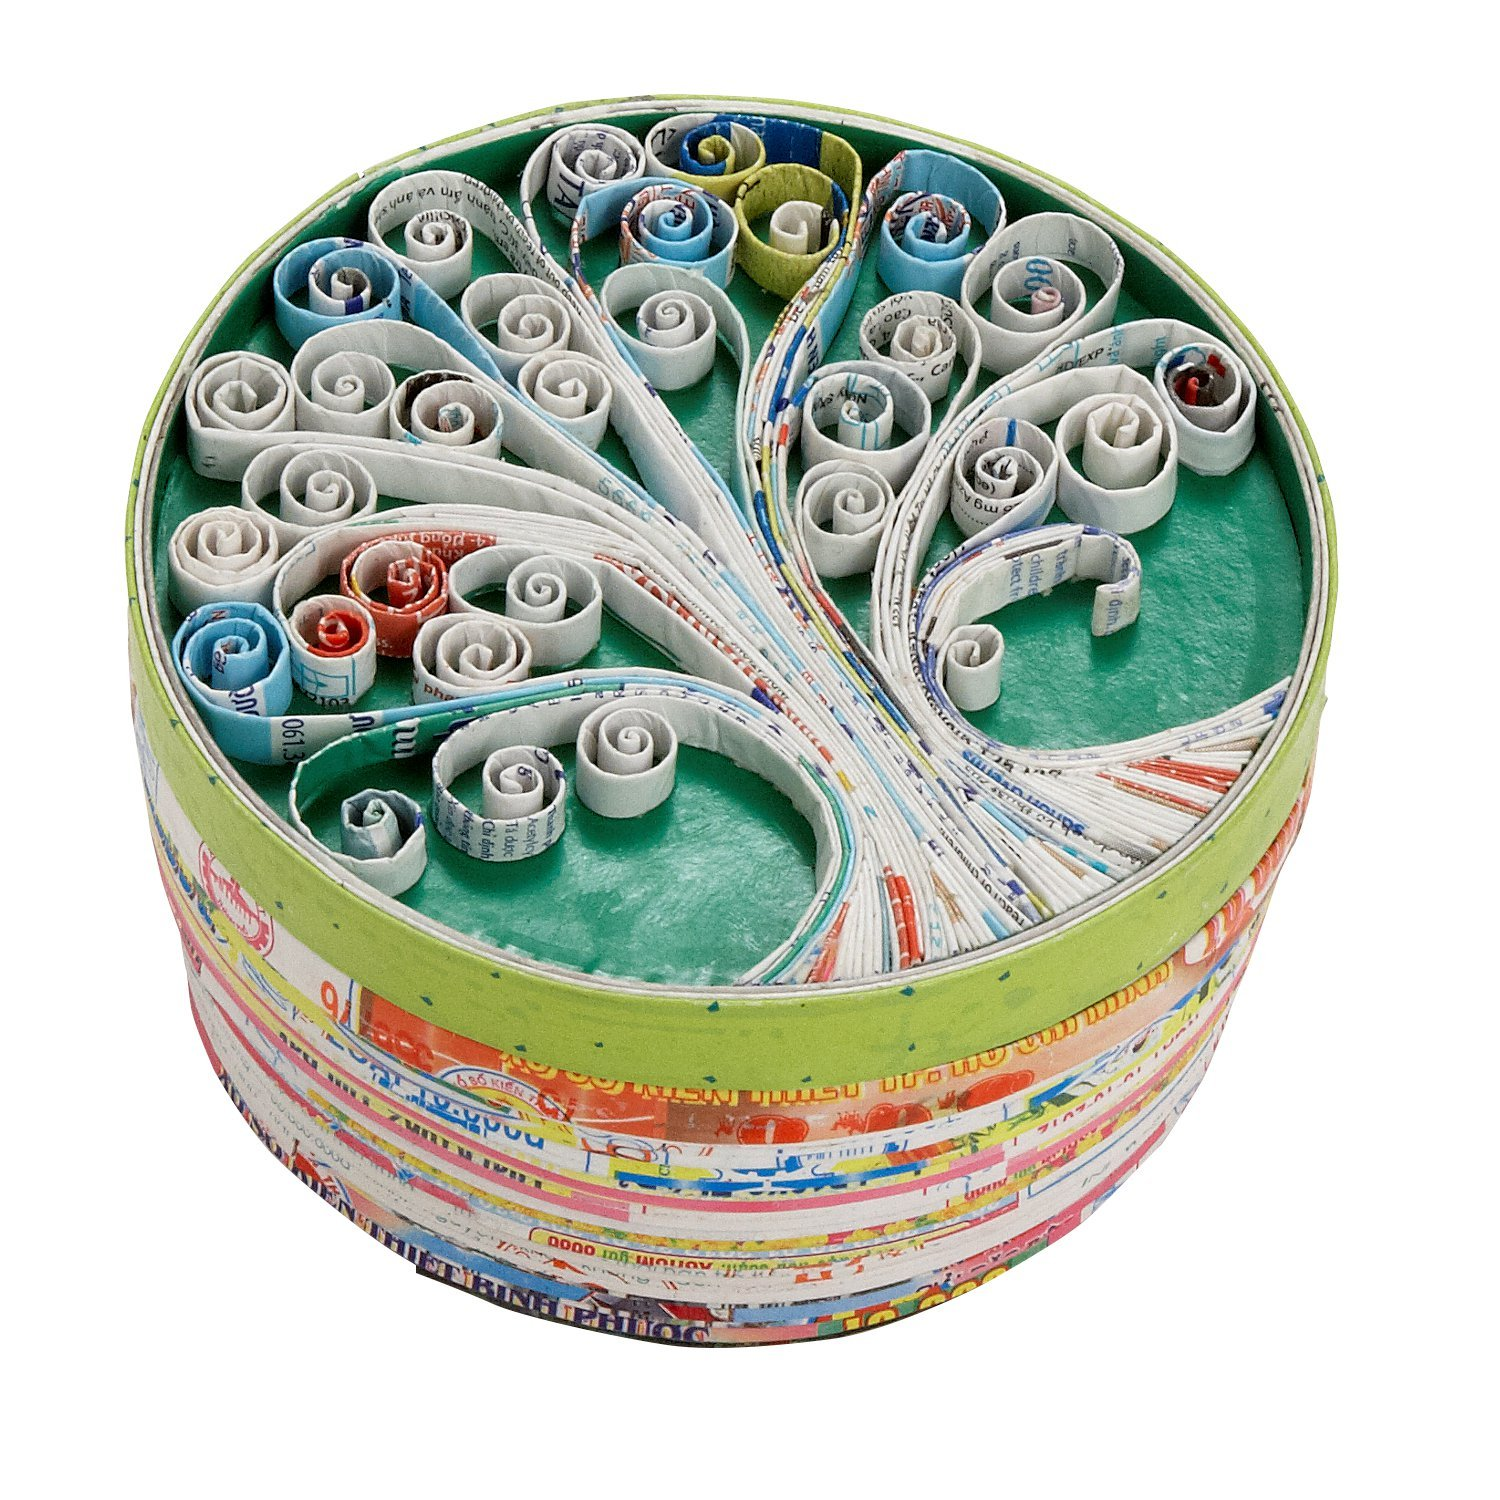 Ten Thousand Villages Round Tree Theme Recycled Material Container 'Love the Earth Box' by Ten Thousand Villages